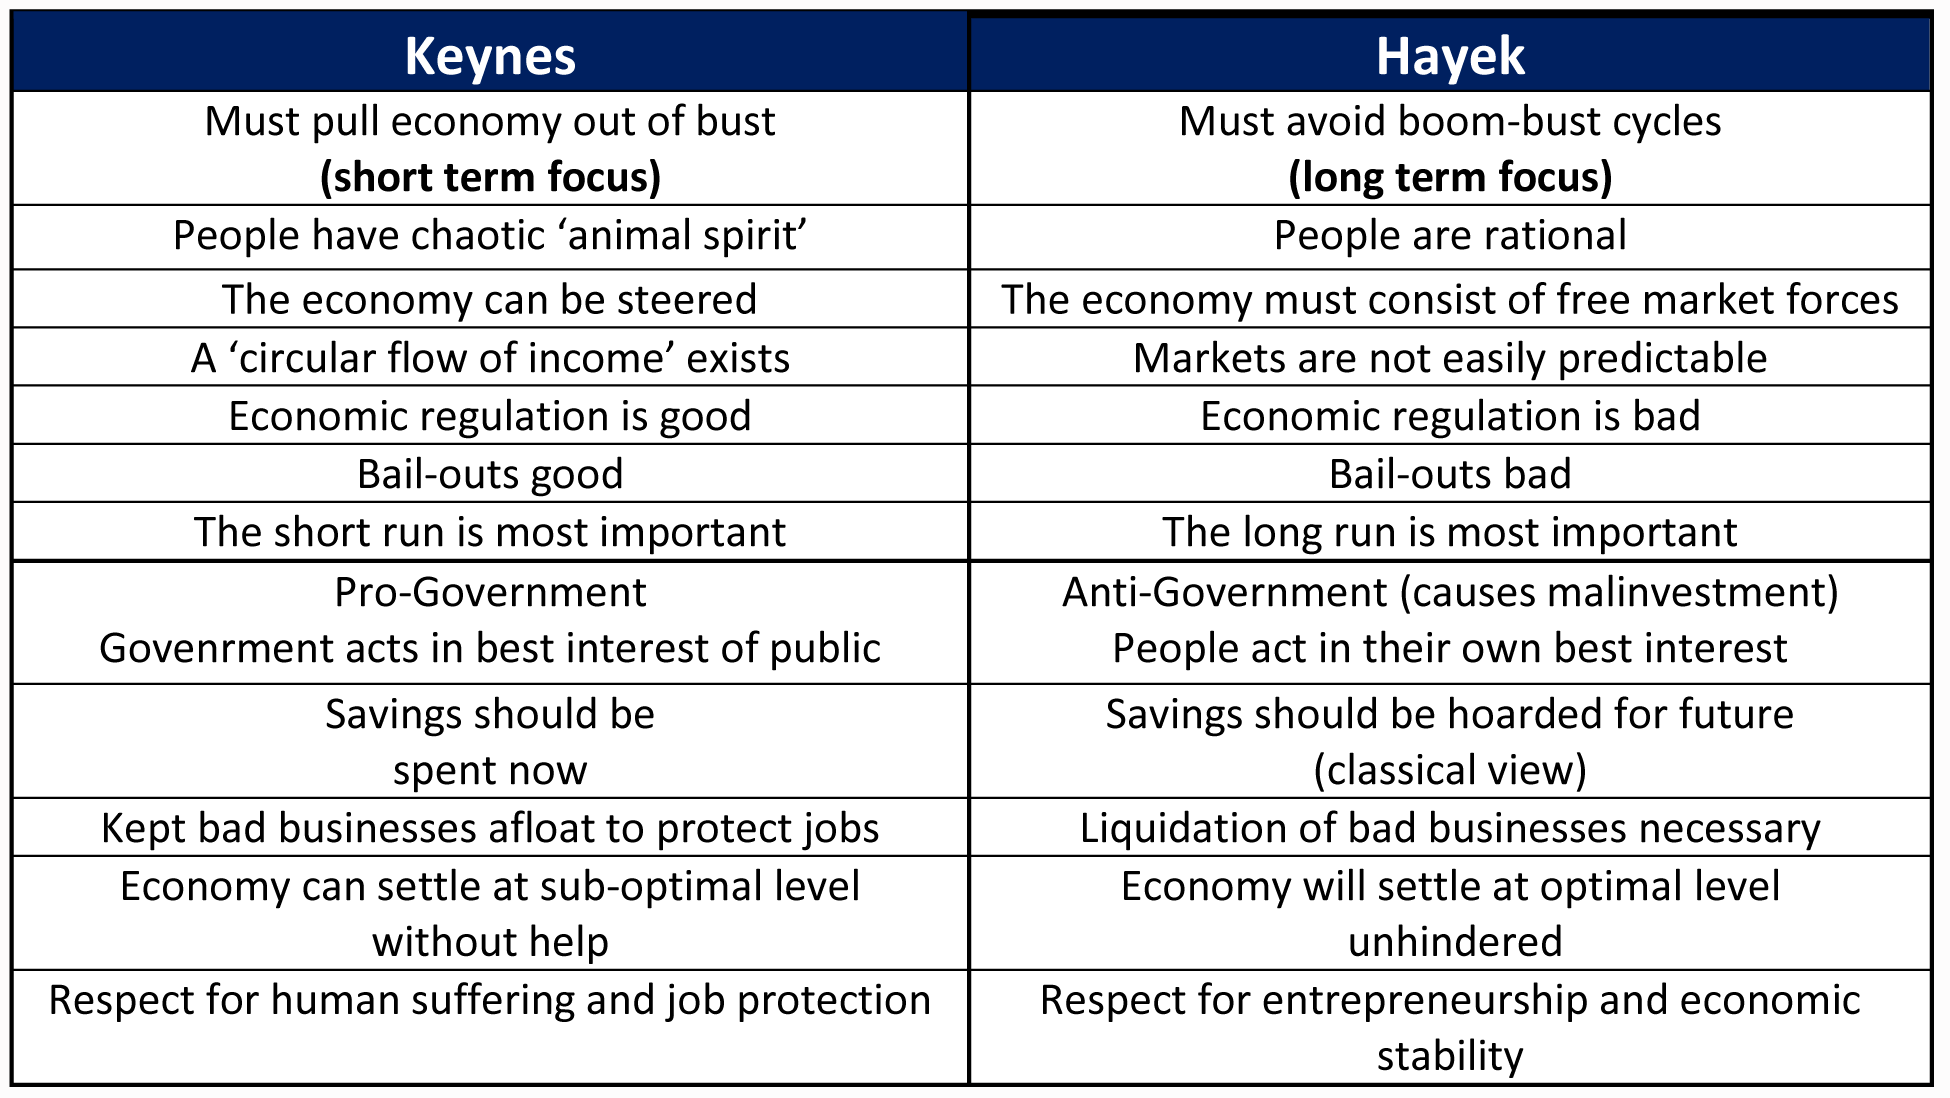 the difference between classical and keynesian Classical theory did not differentiate between microeconomics and macroeconomics however, during the great depression of the 1930s, the macroeconomy was in evident disequilibrium  this led john maynard keynes to write the general theory of employment, interest, and money in 1936.